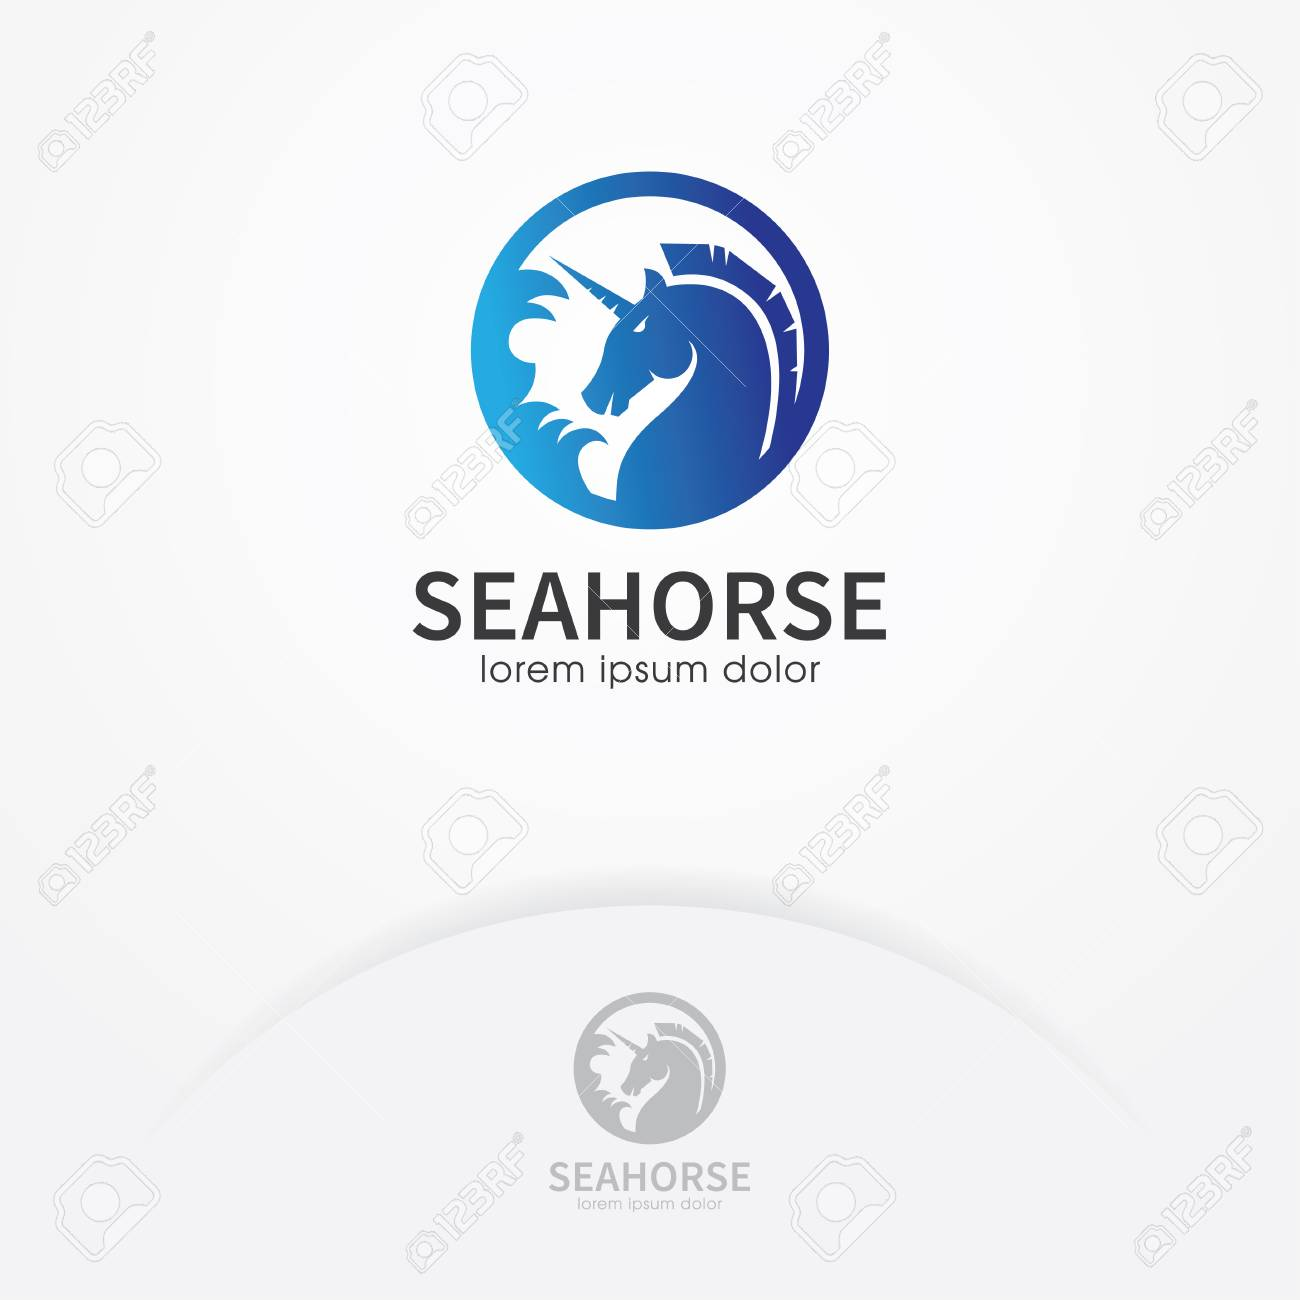 Blue Seahorse Logo Design Seahorse Symbol In Circle Vector Royalty Free Cliparts Vectors And Stock Illustration Image 95147626